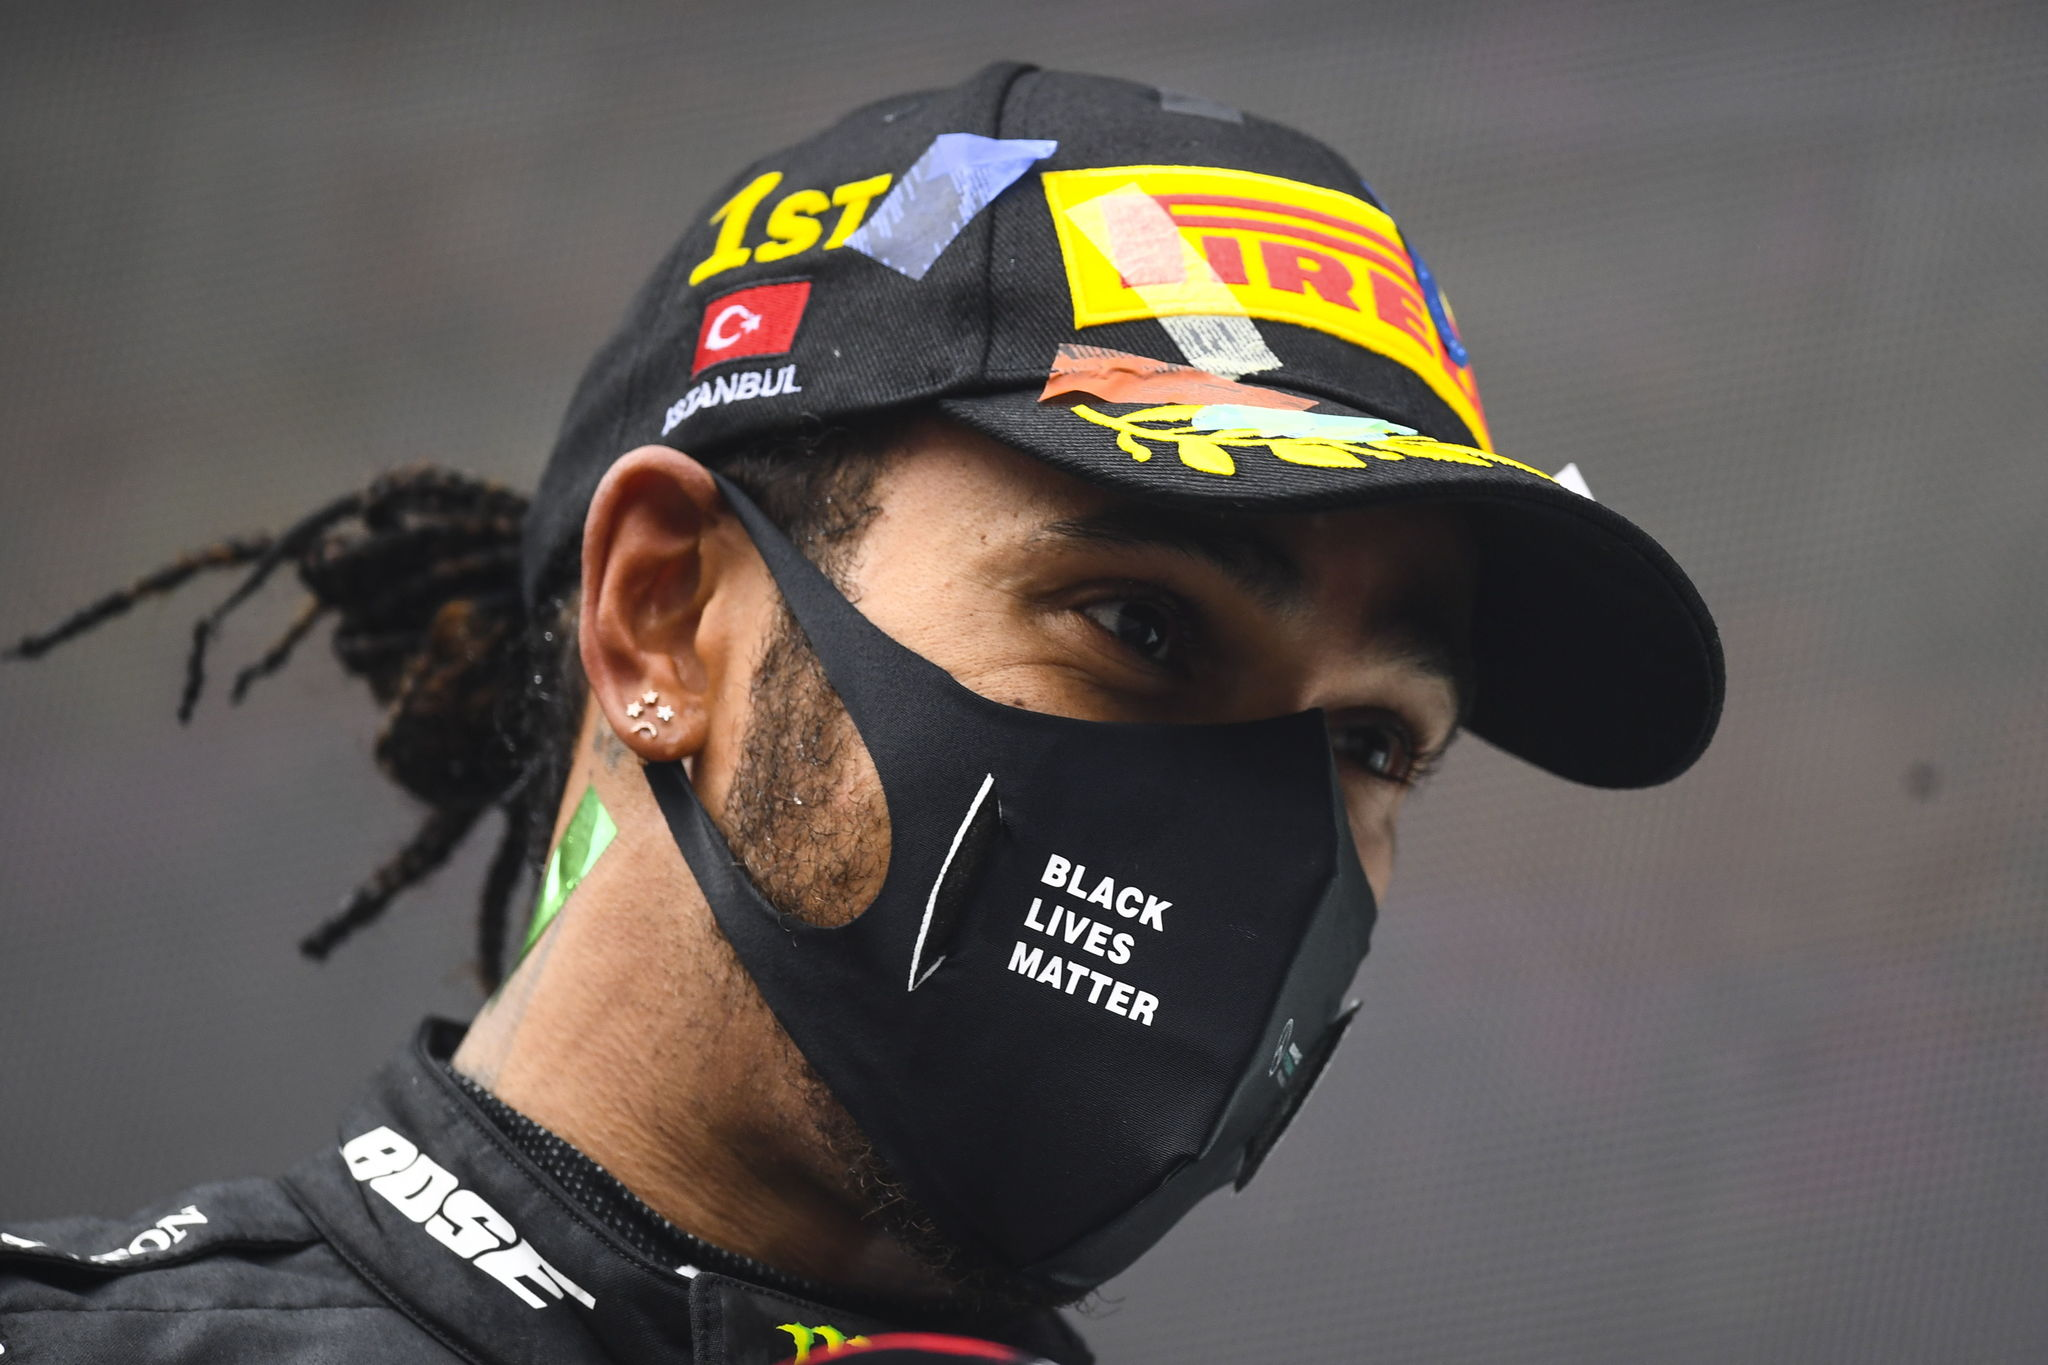 Istanbul (Turkey), 15/11/2020.- British Formula One driver lt;HIT gt;Lewis lt;/HIT gt; lt;HIT gt;Hamilton lt;/HIT gt; of Mercedes-AMG Petronas wears a protective face mask reading black lives matter after winning the race and the 7th Formula One Championship at the 2020 Formula One Grand of Turkey at the Intercity Istanbul Park circuit, Istanbul, Turkey, 15 November 2020. (Fórmula Uno, Turquía, Estanbul) EFE/EPA/Clive Mason / Pool